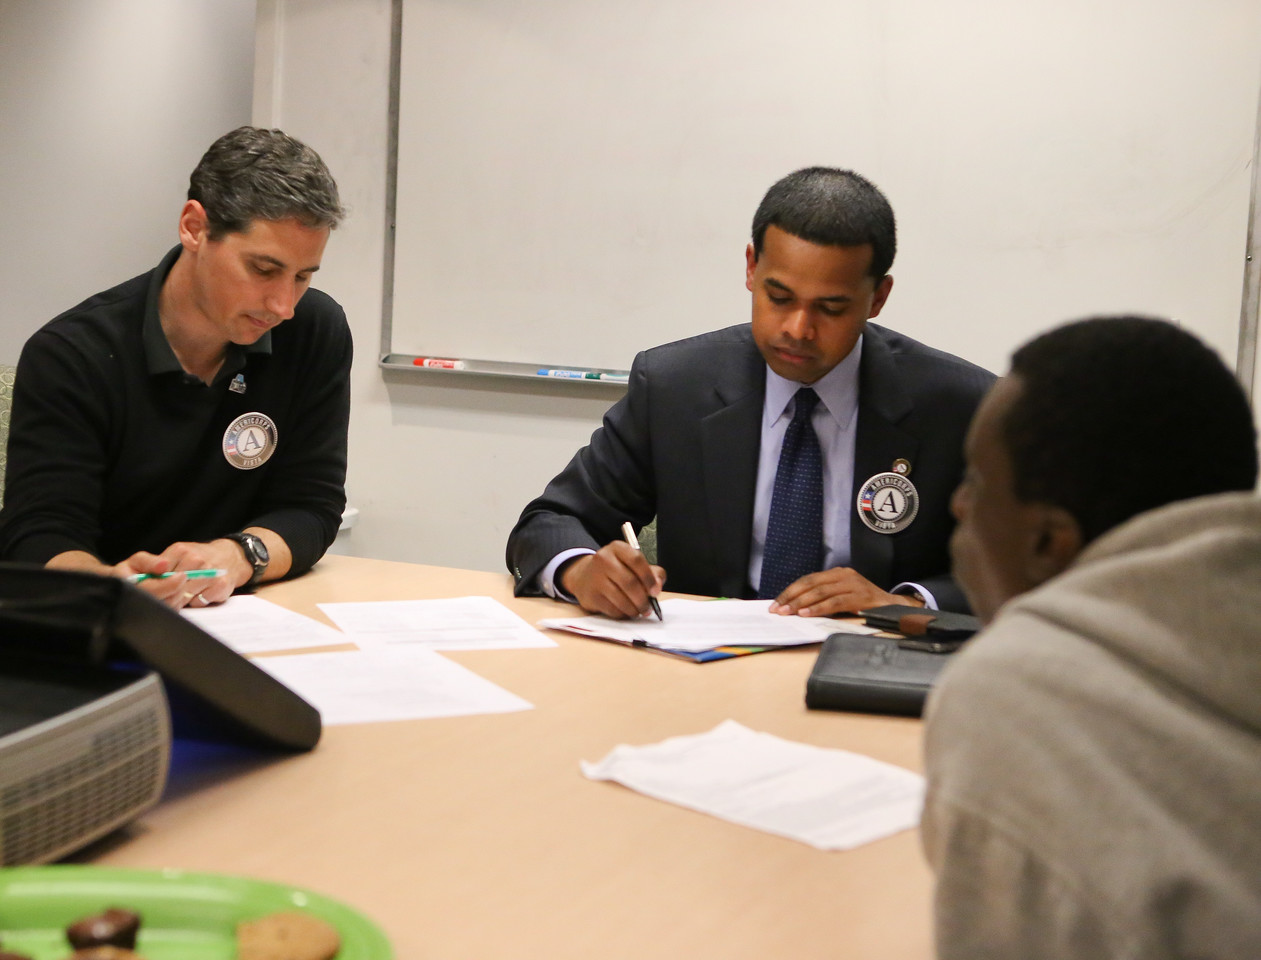 Director of Volunteer Management Matt Thornton, Higher Achievement with VISTA Director Paul Monteiro assisting a student scholar on an upcoming speech. Corporation for National and Community Service Photo.